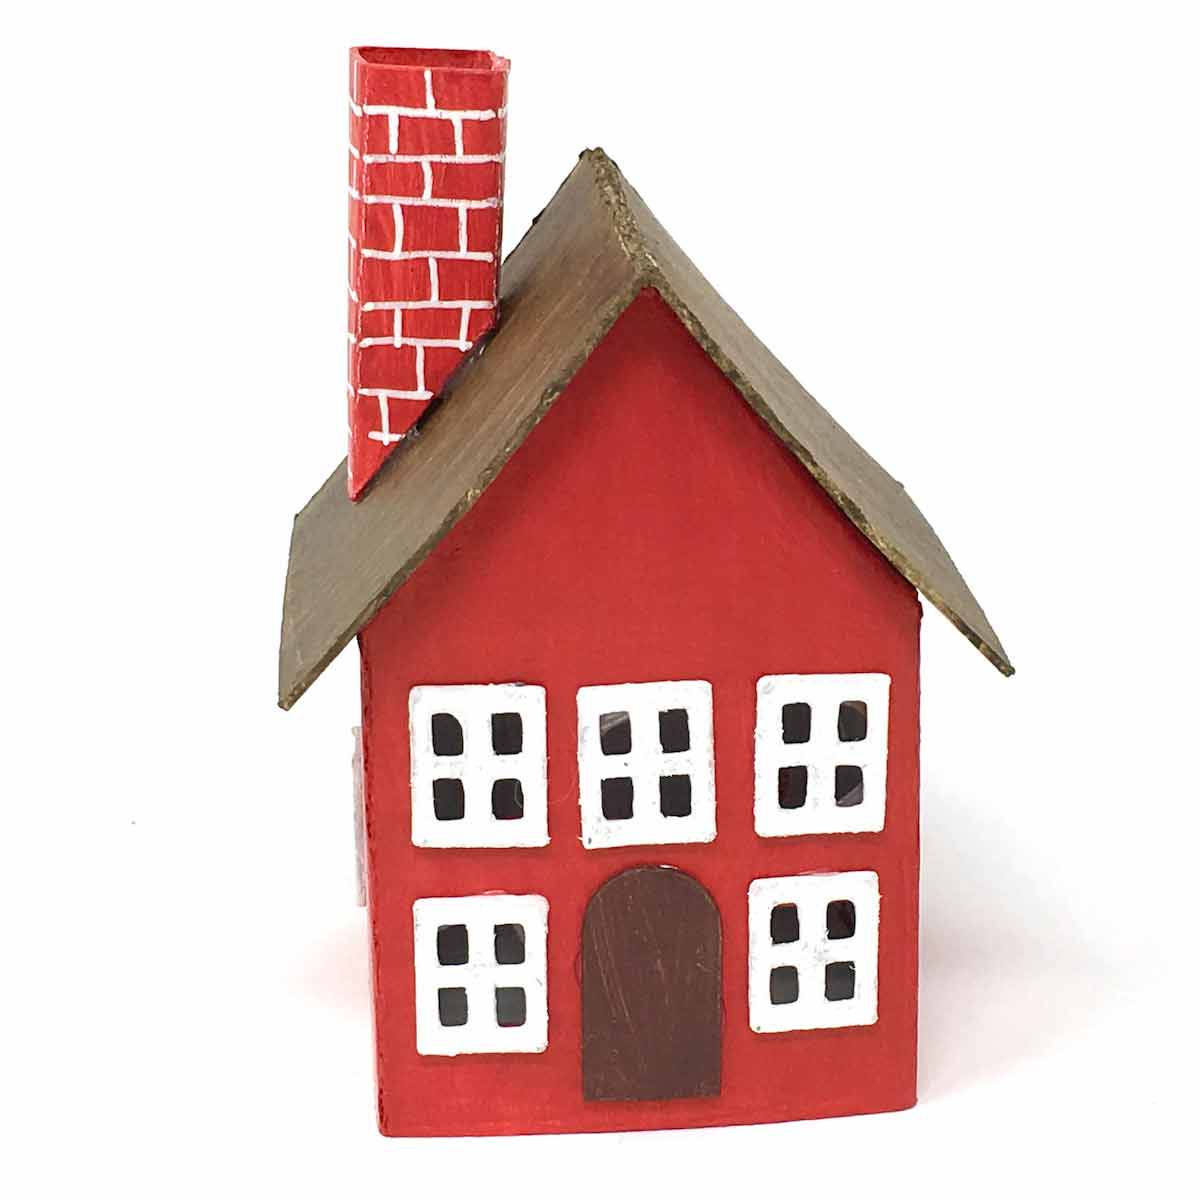 Tiny paper house painted in red with brown roof and red chimney